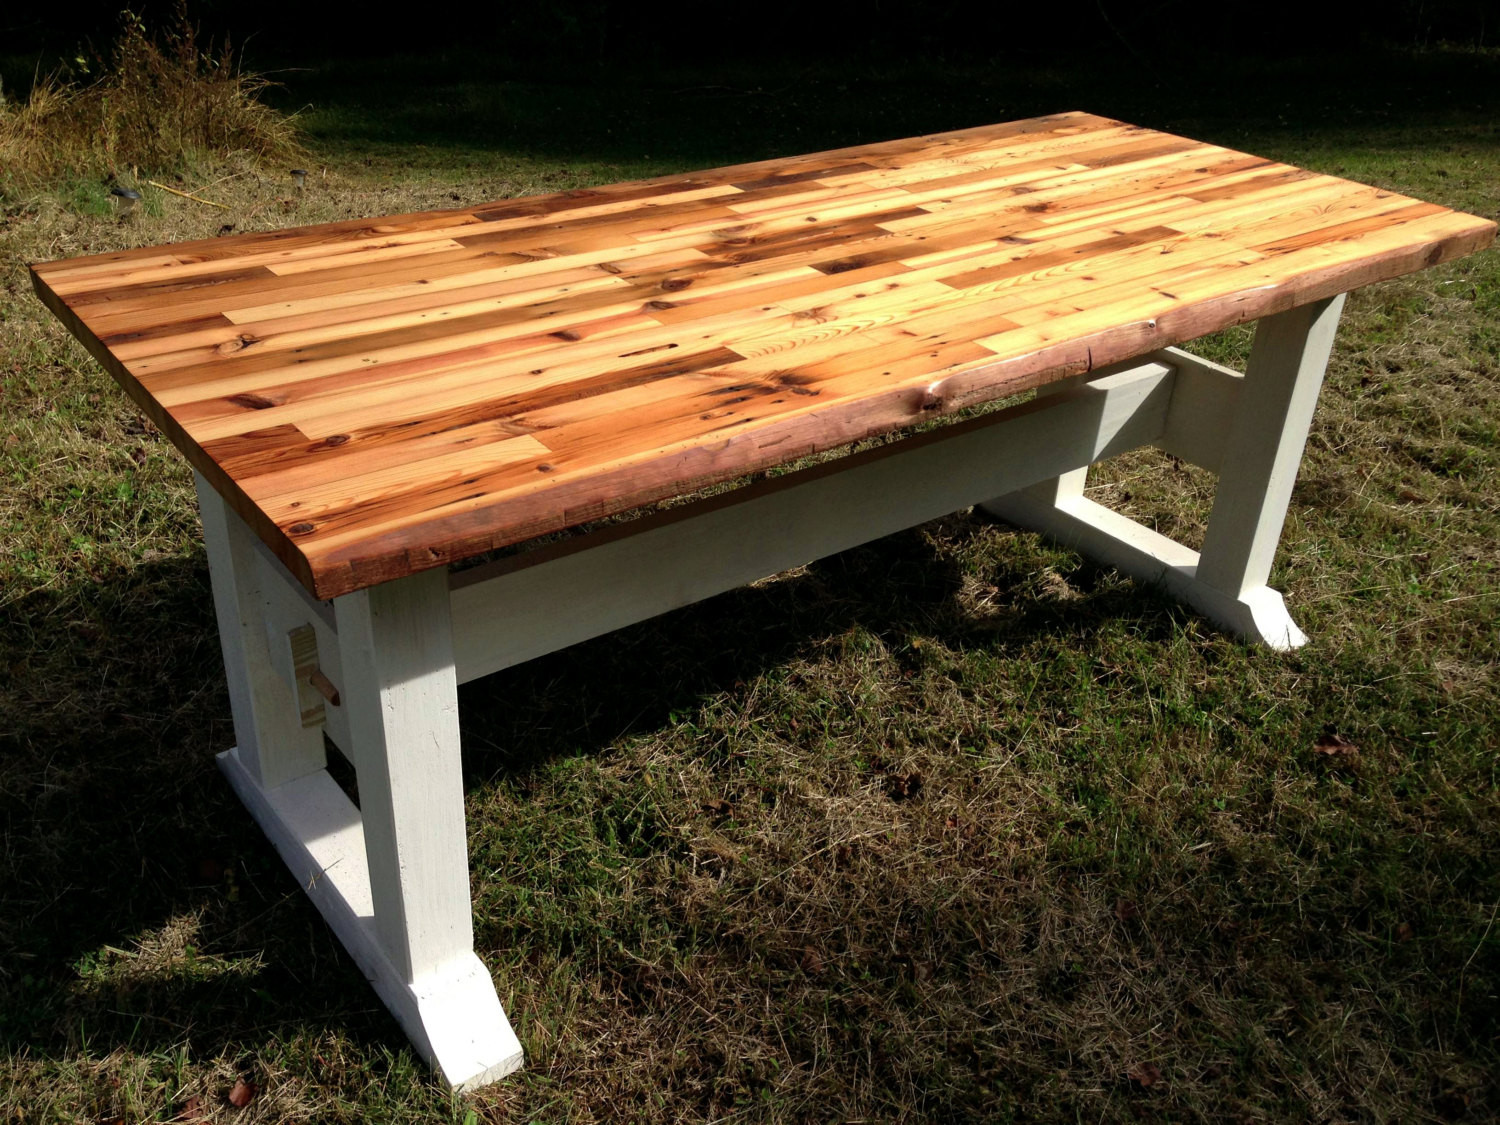 Best ideas about DIY Table Tops . Save or Pin Butcher block table top and trestle frame Now.